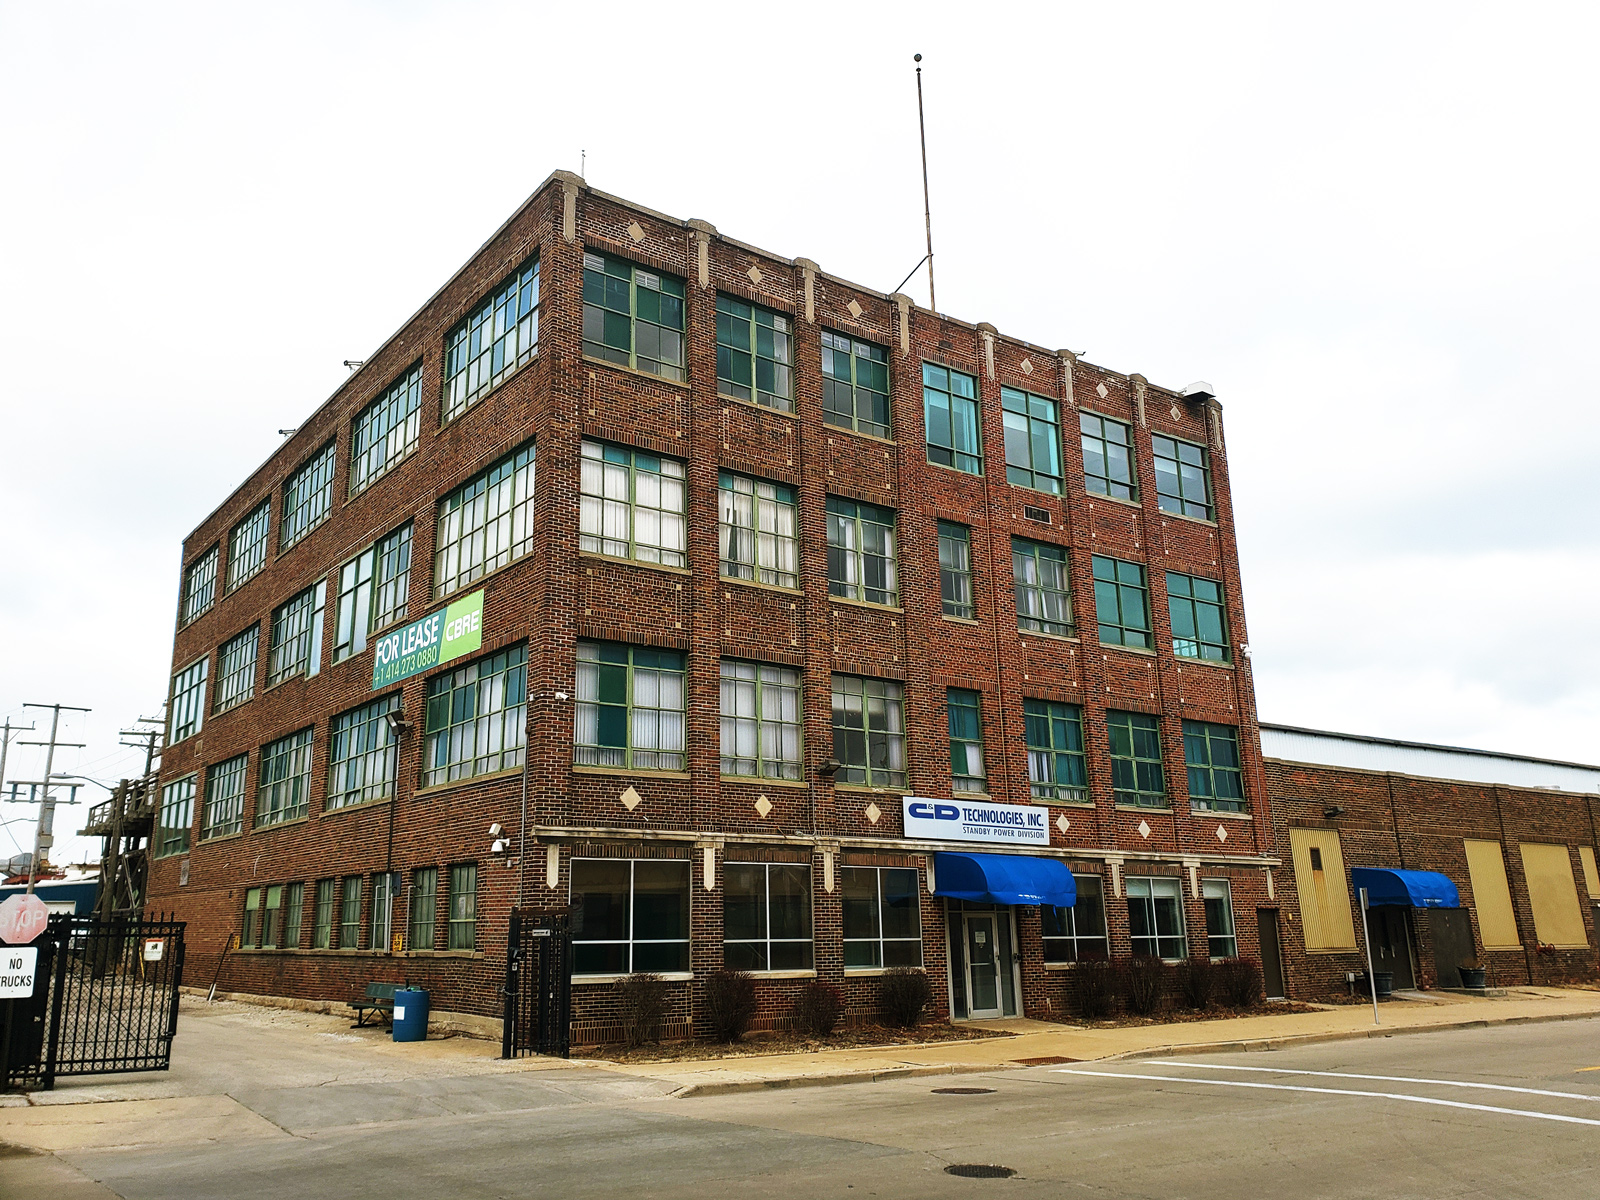 The main building at 900 E Keefe Ave. is a classic example of 1920's industrial red brick architecture.